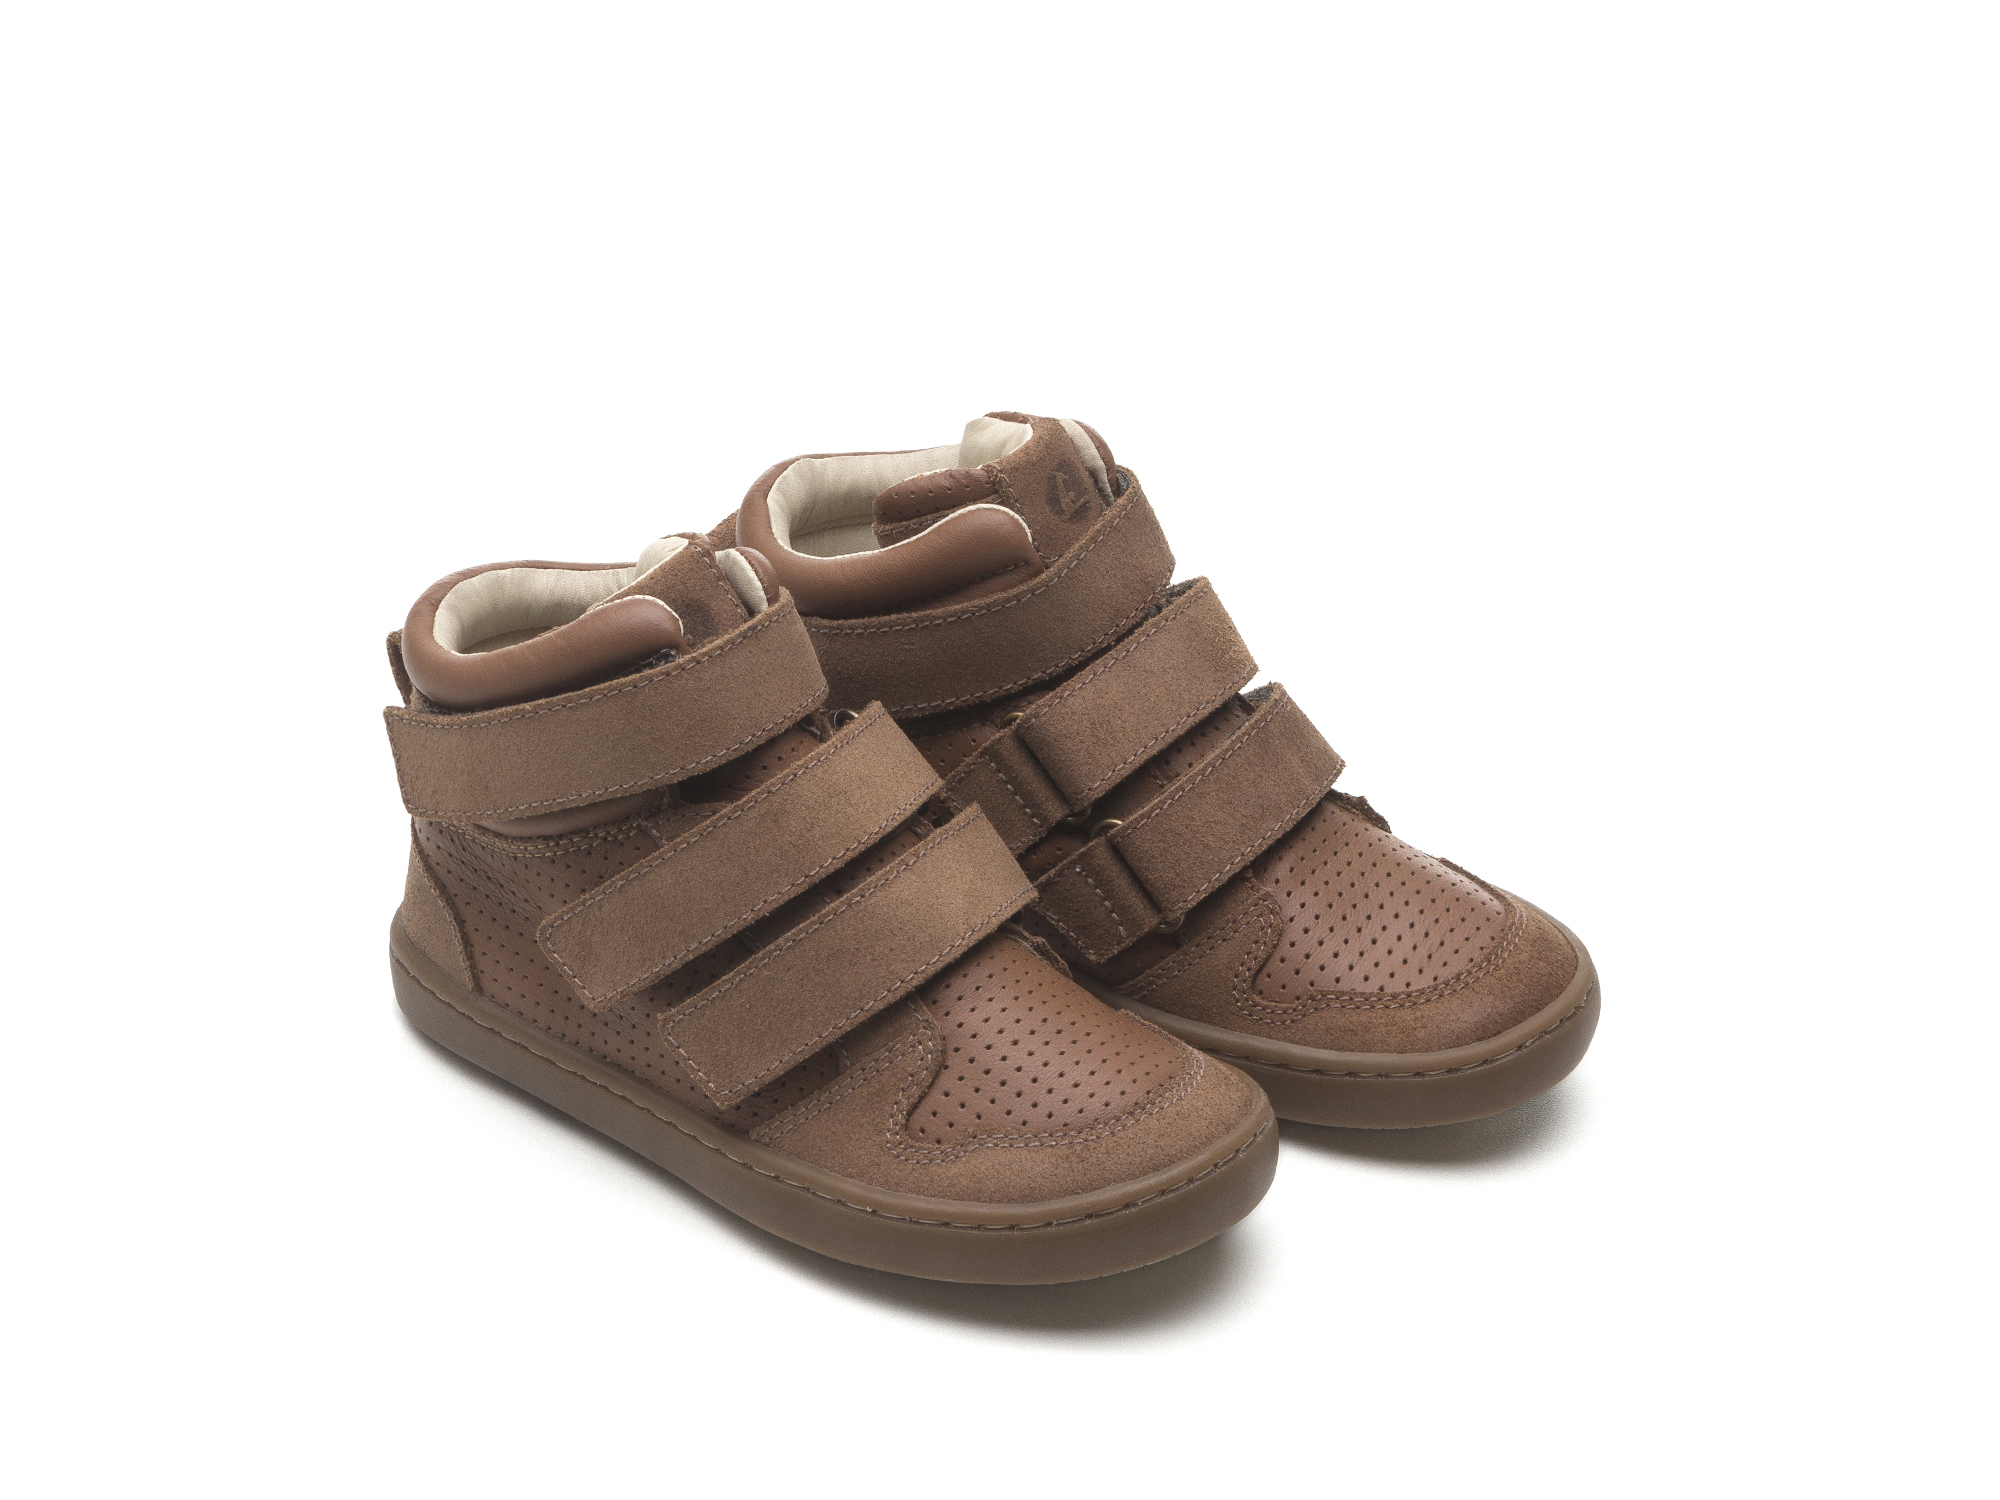 Bota Little Edge Rust Suede/ Cacau Holes Toddler 2 à 4 anos - 0